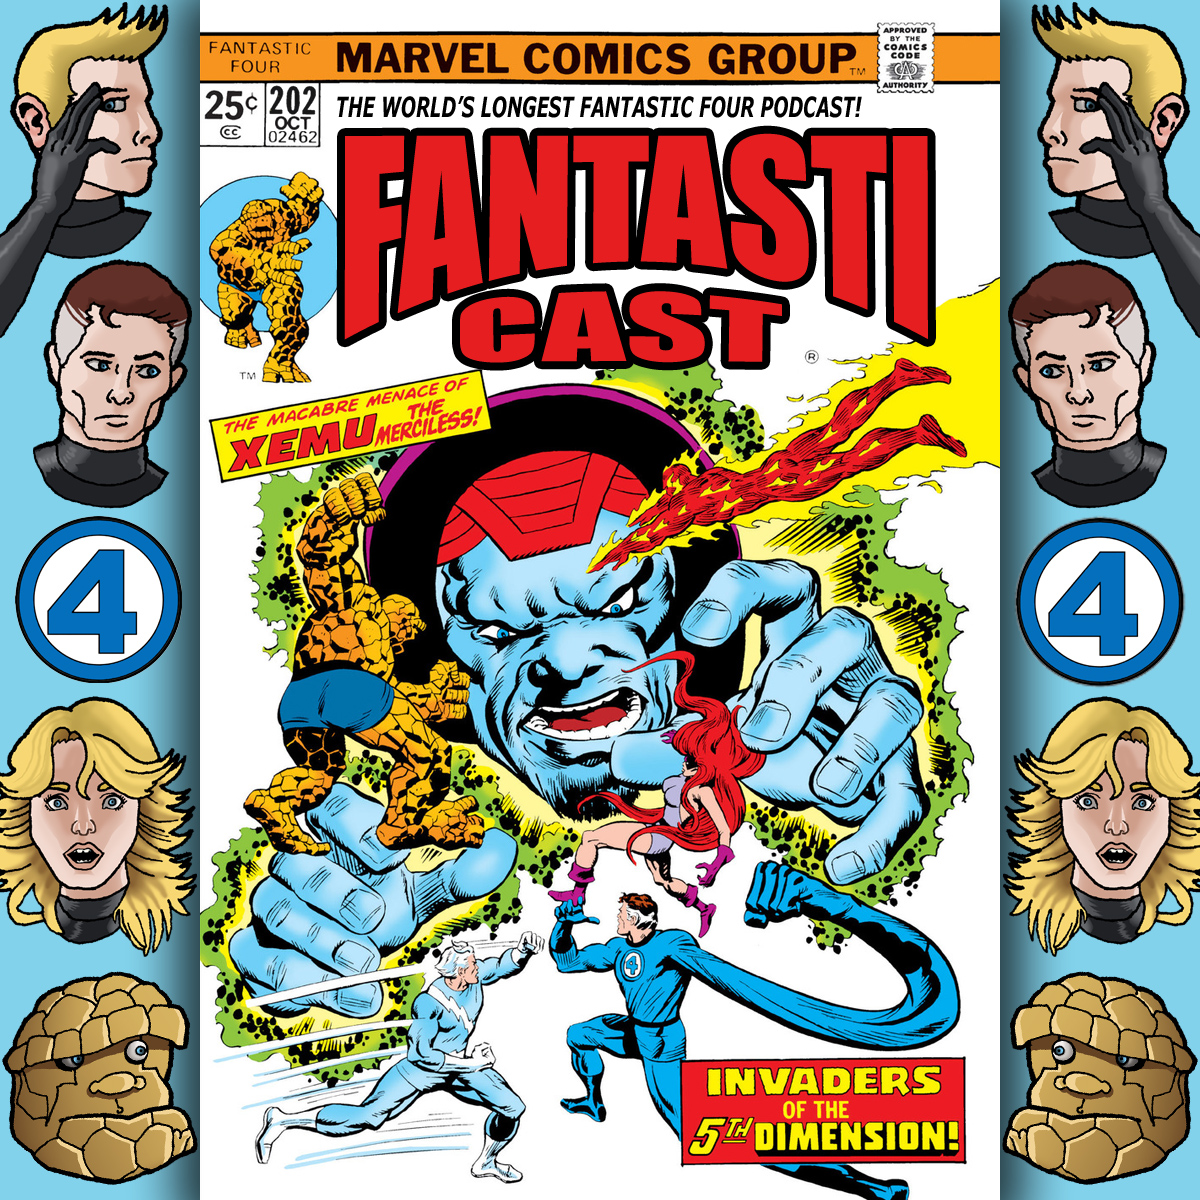 Episode 202: Fantastic Four #158 - Invasion From The 5th (Count It, 5th) Dimension